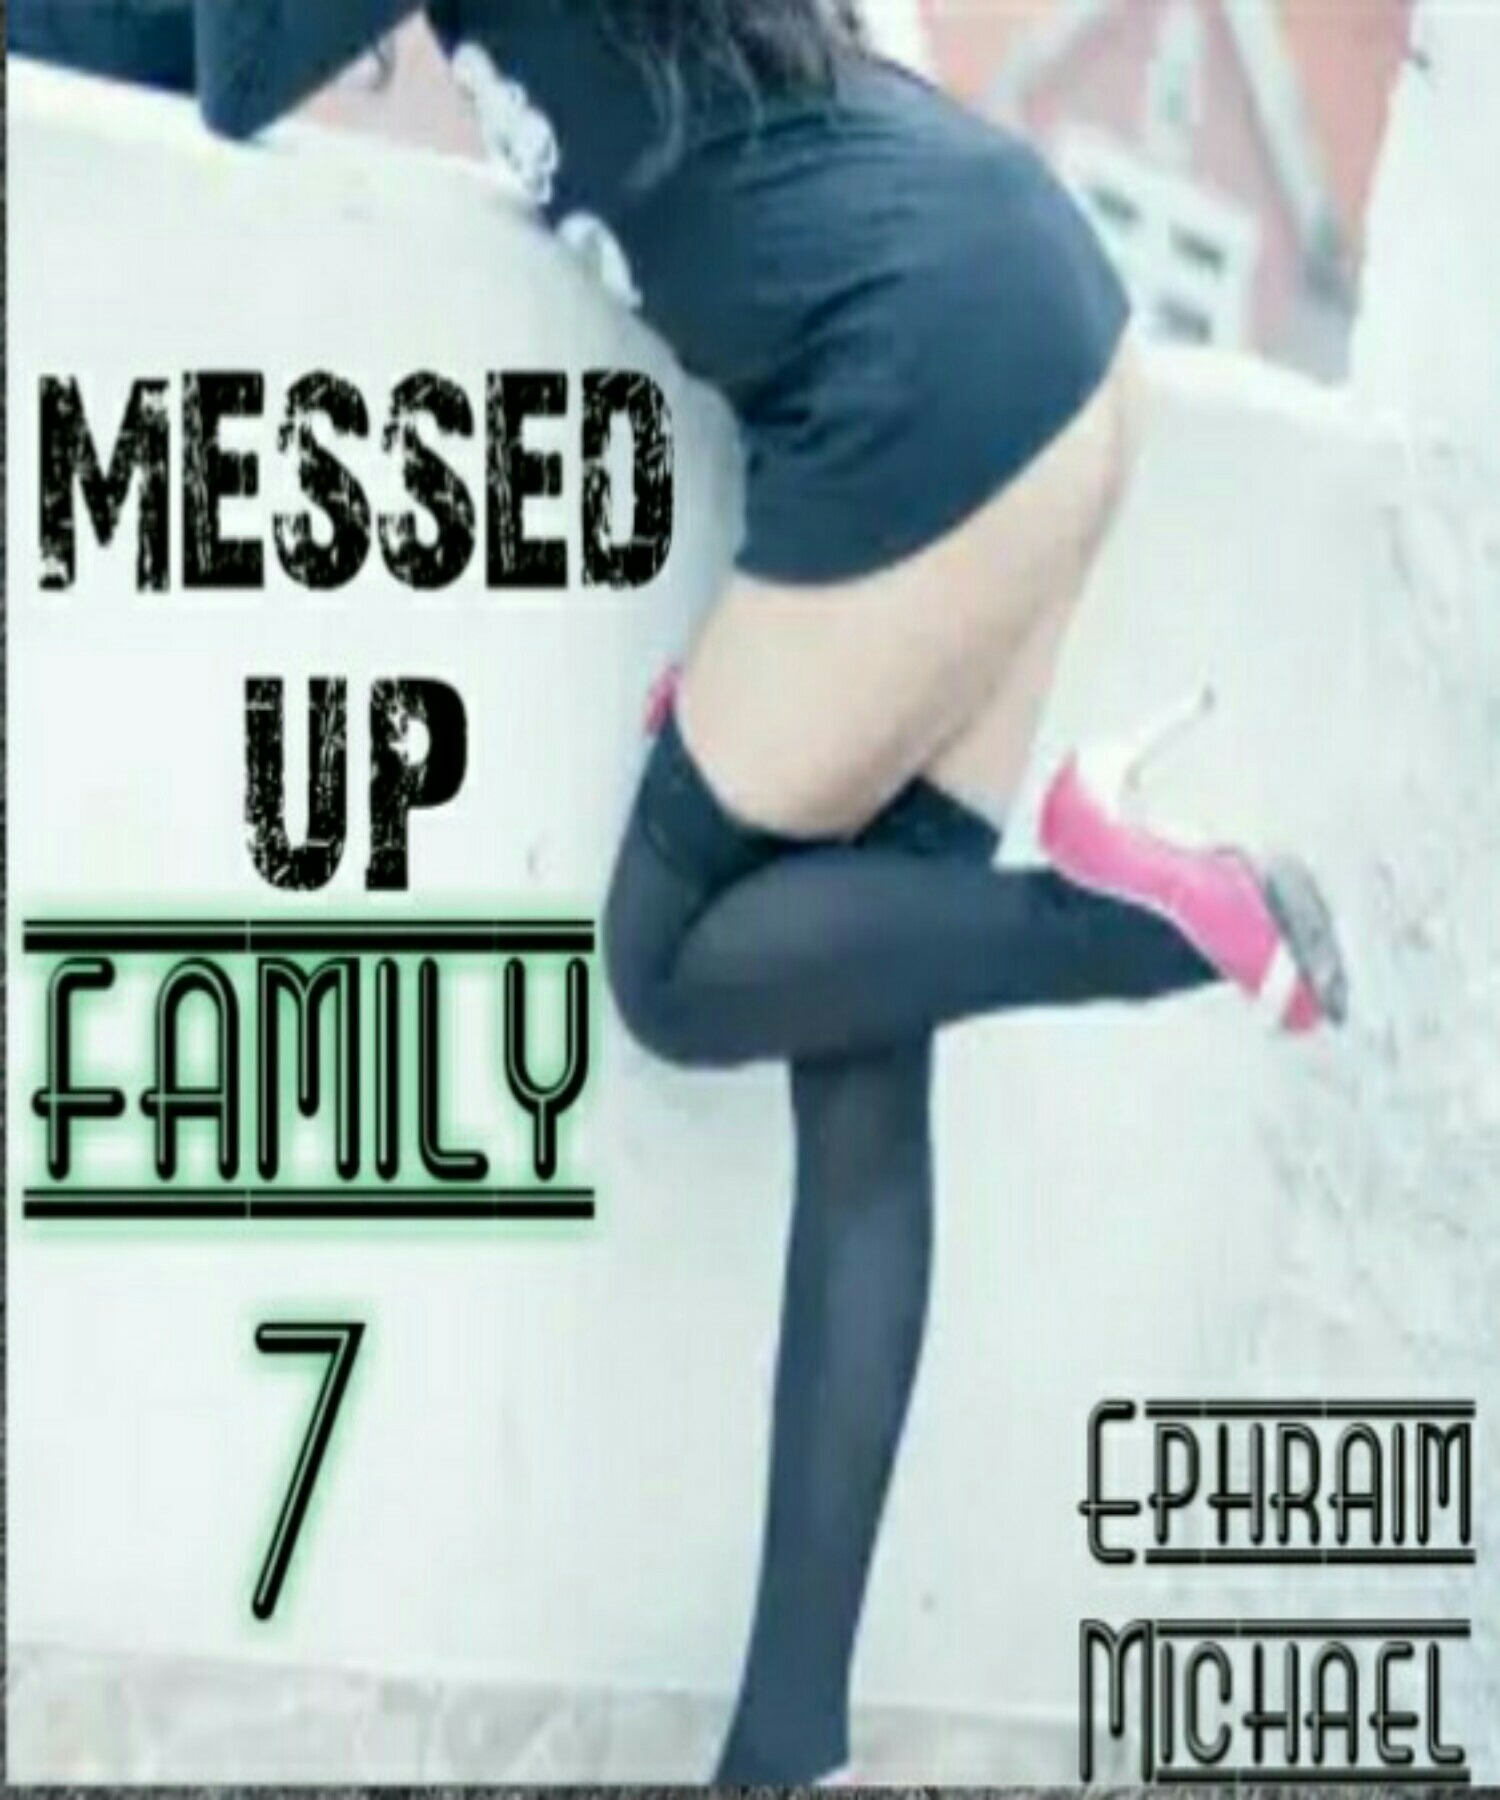 Messed up Family 7